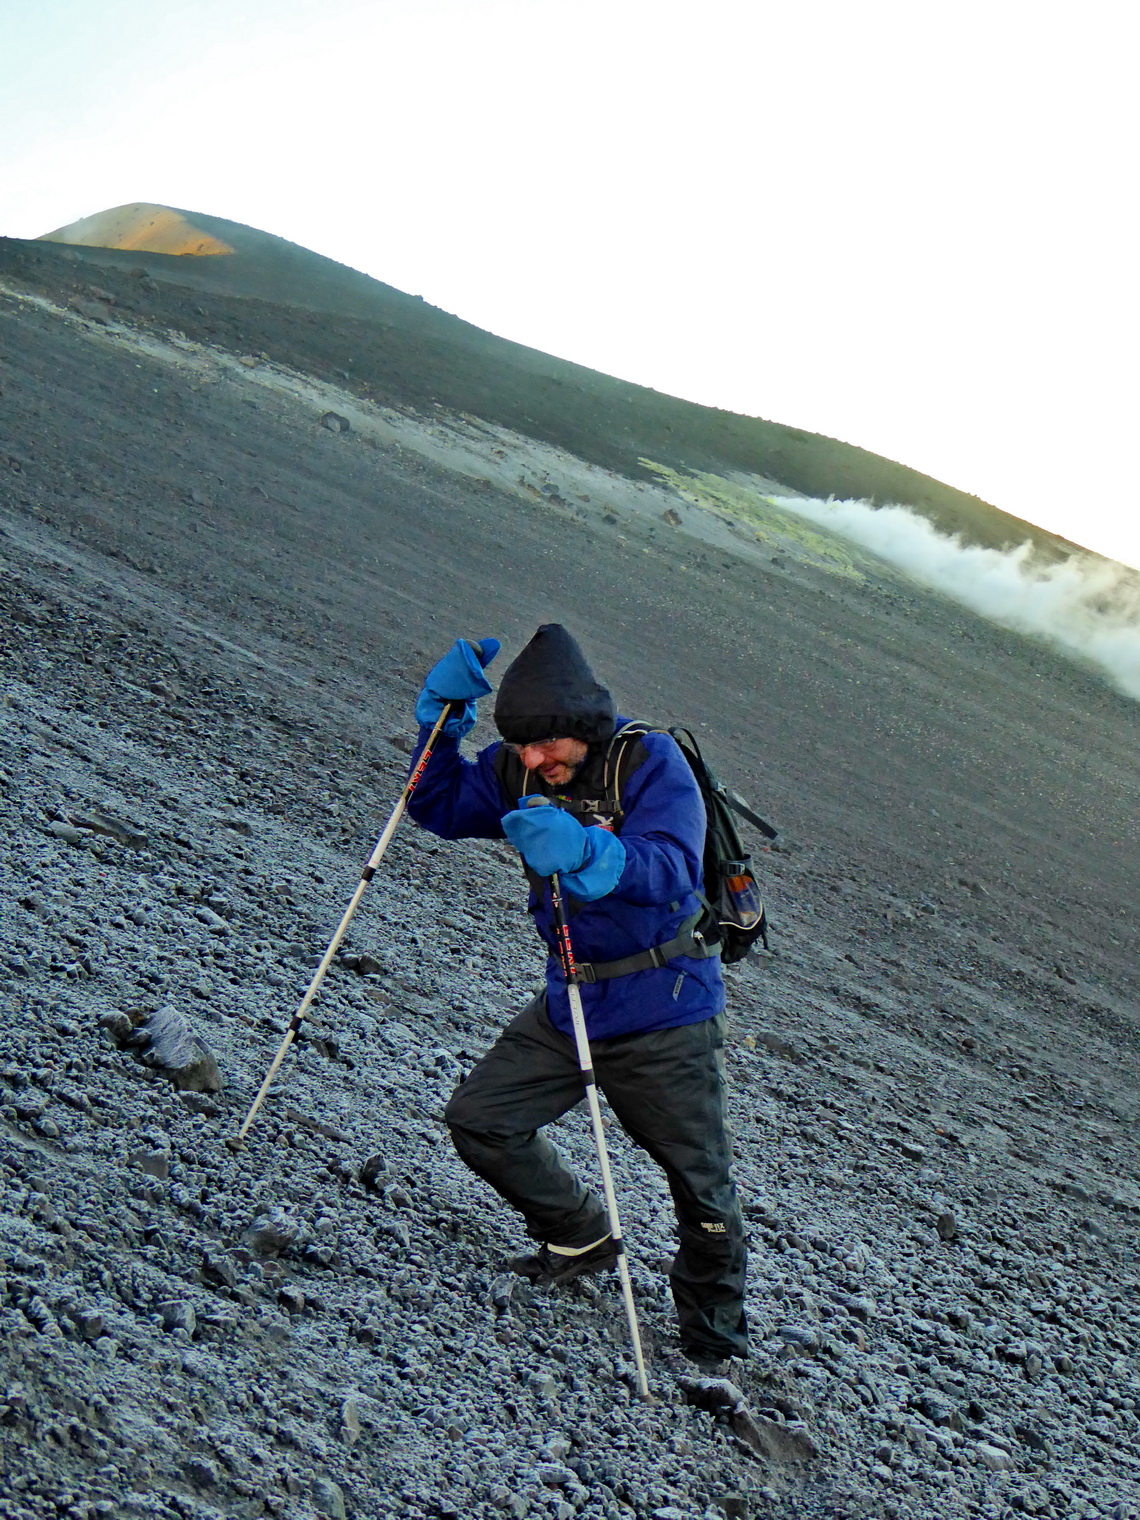 Fighting against the storm on smoking Volcan Puracé